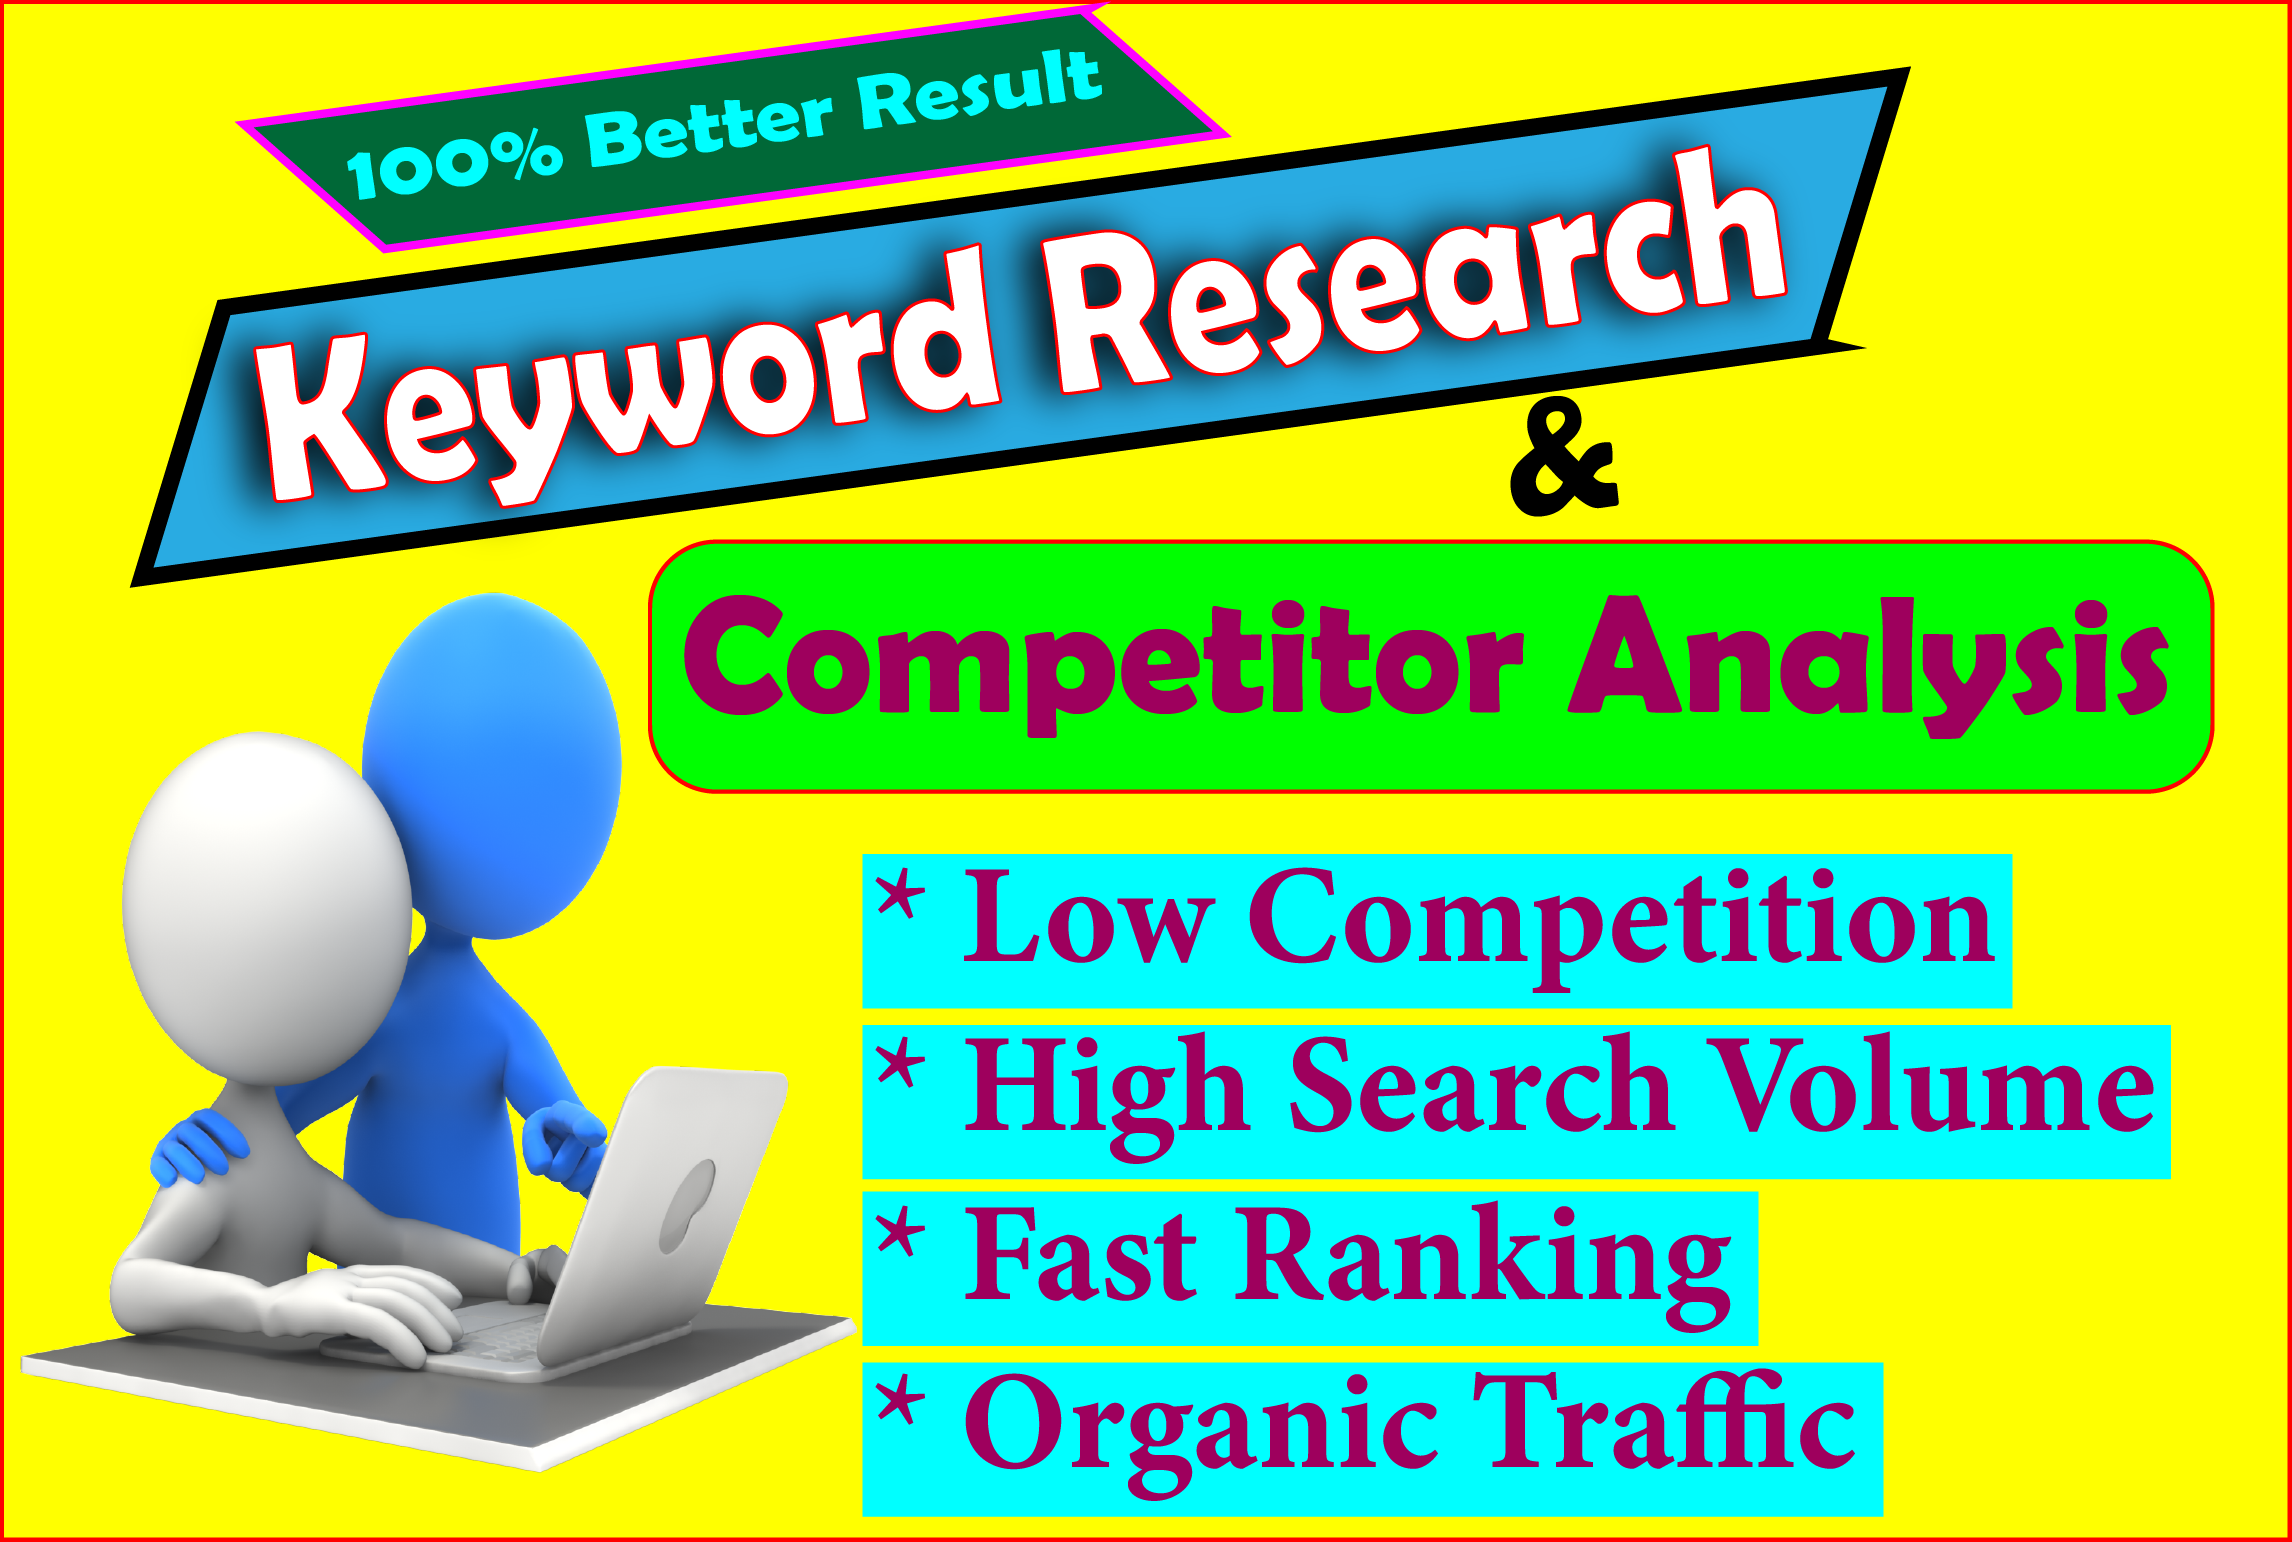 I provide best SEO keyword research and competitor analysis